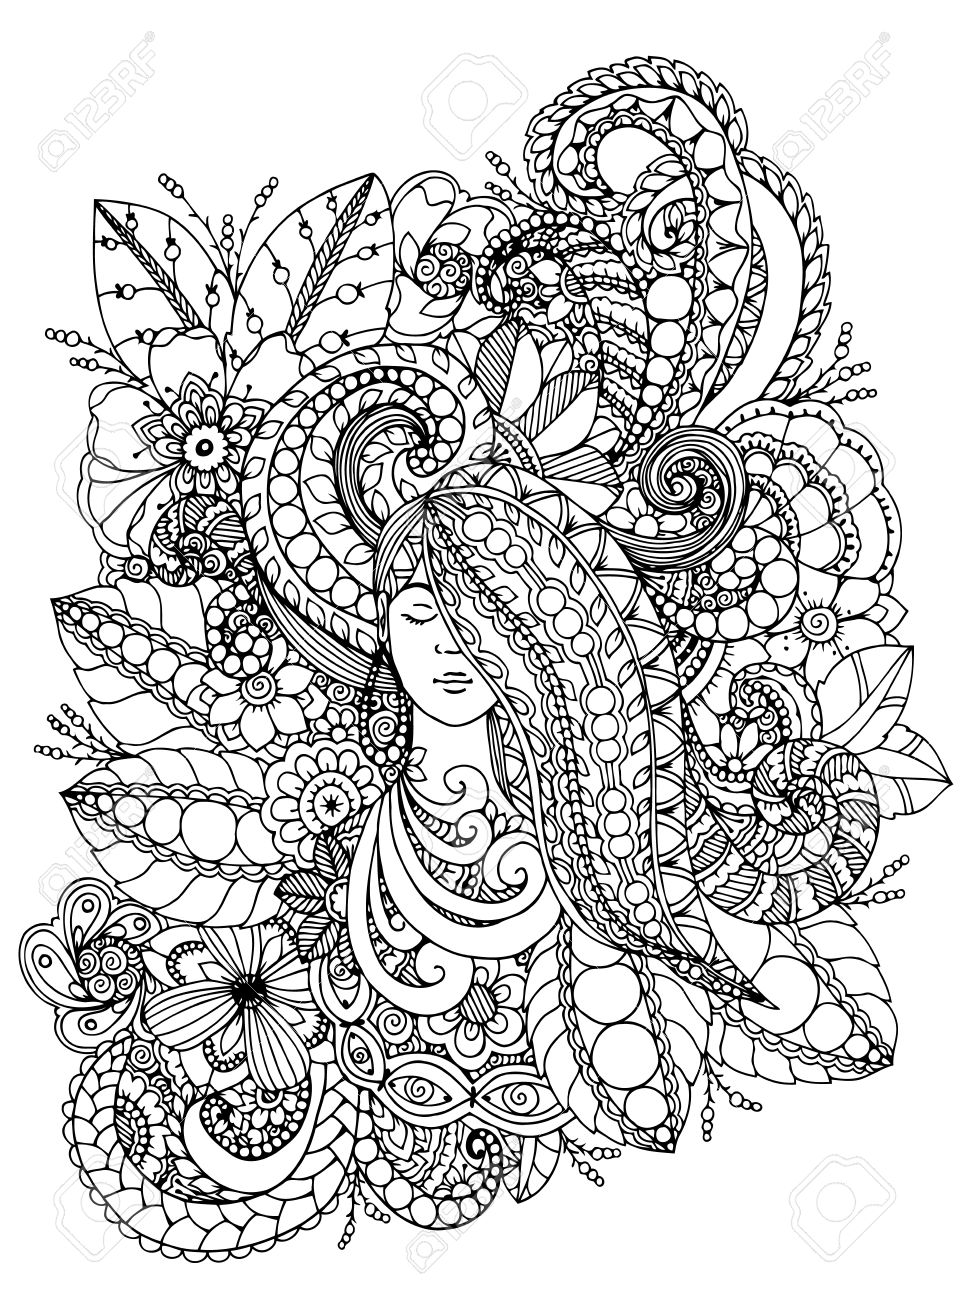 972x1300 Vector Illustration Zentangl Girl With Flowers In Her Hair. Doodle